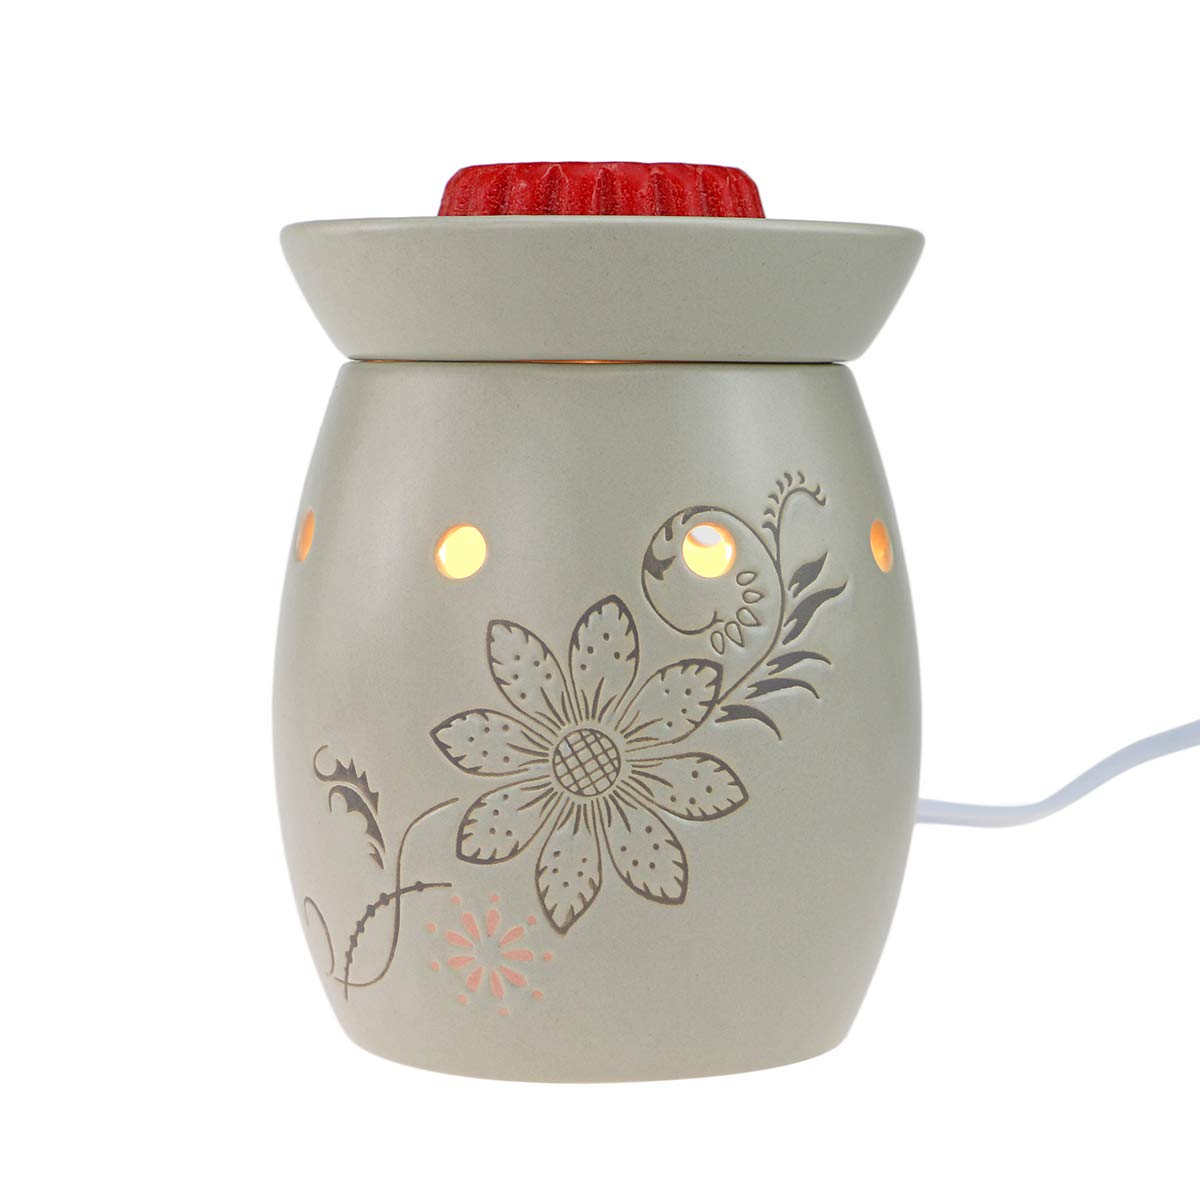 StarMoon Electric 2-in-1 Candle Warmer for Wax Melt, Home Fragrance Diffuser, Fragrance Air Fresheners, Home Décor, No Flame, Removable Dish, with One More Bulb (Peach Blossom)